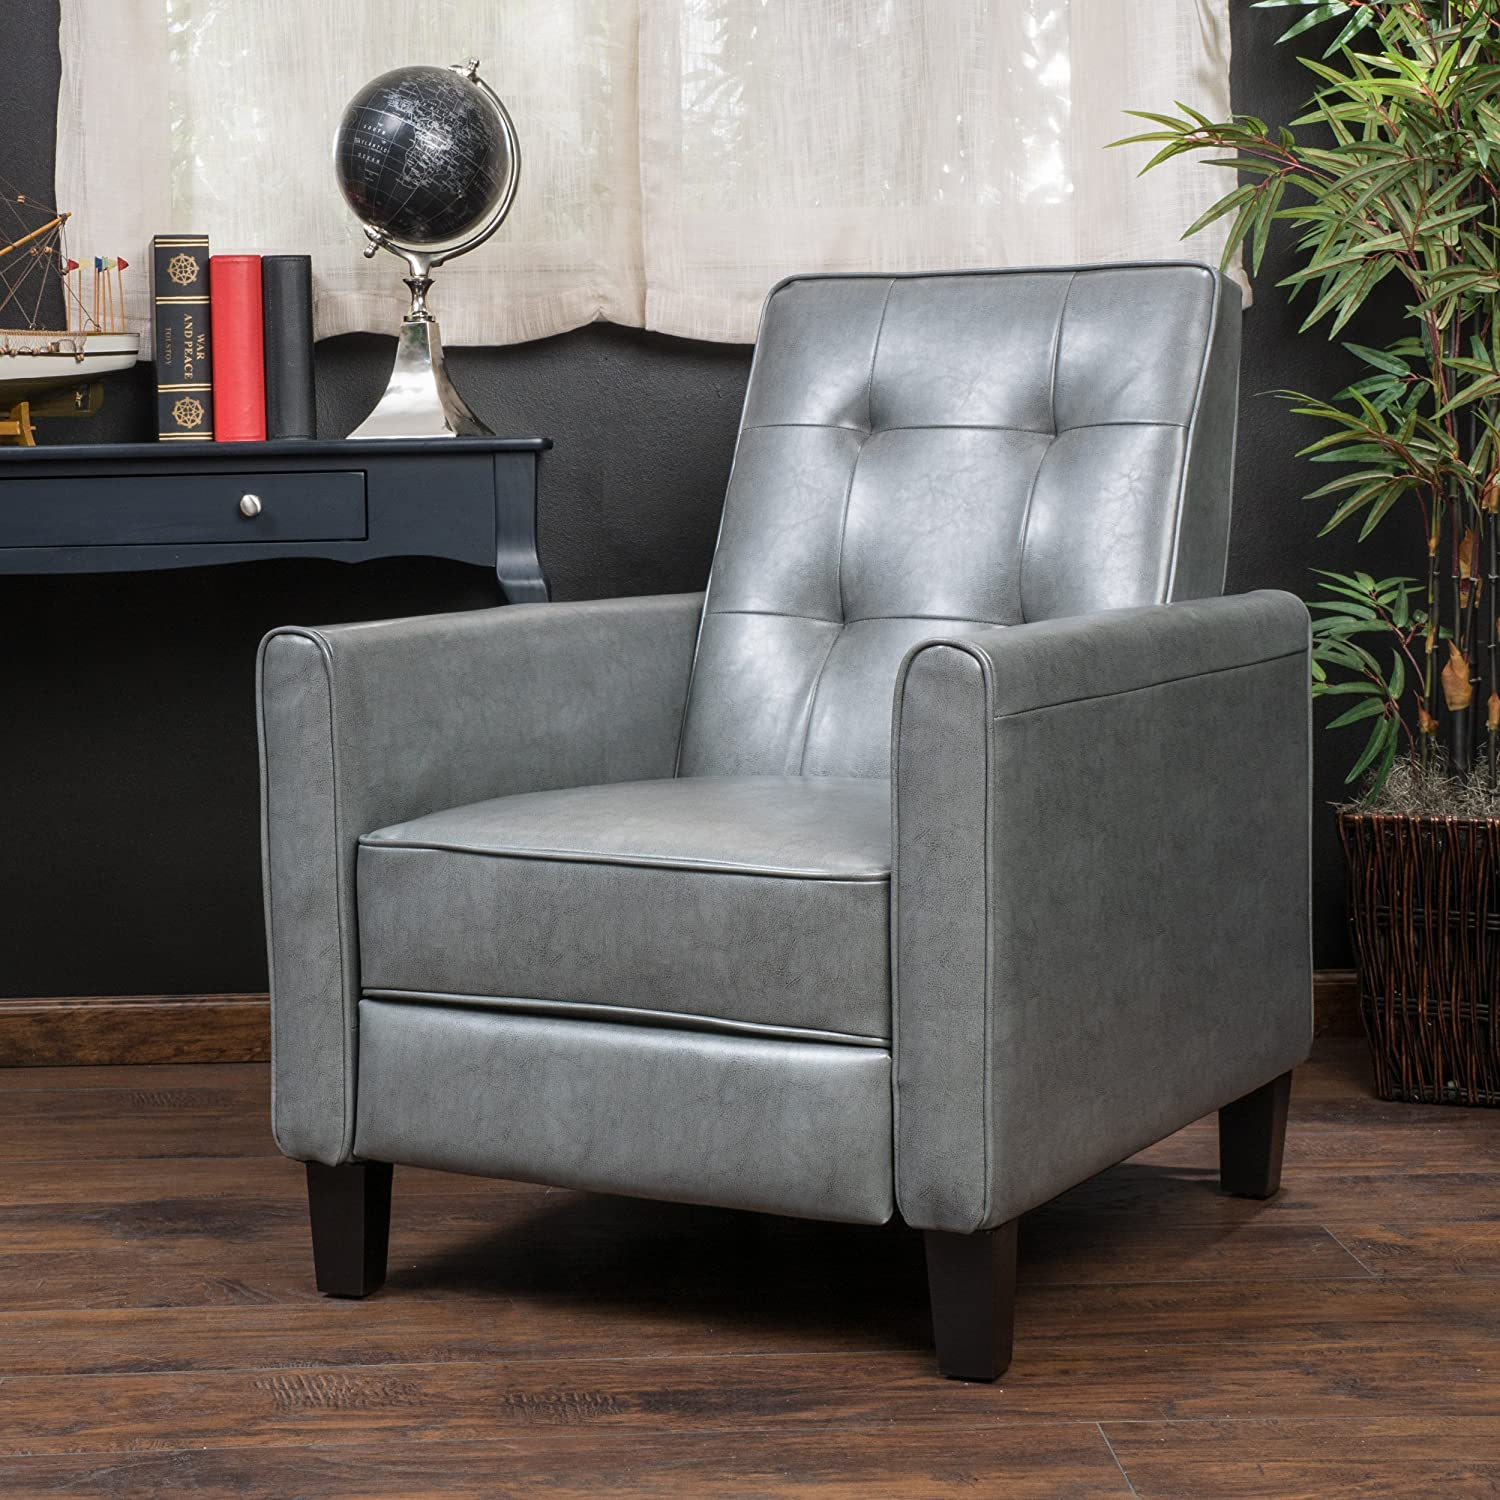 Amazon.com Denise Austin Home Elan Tufted Bonded Leather Recliner Chair Kitchen \u0026 Dining & Amazon.com: Denise Austin Home Elan Tufted Bonded Leather Recliner ... islam-shia.org